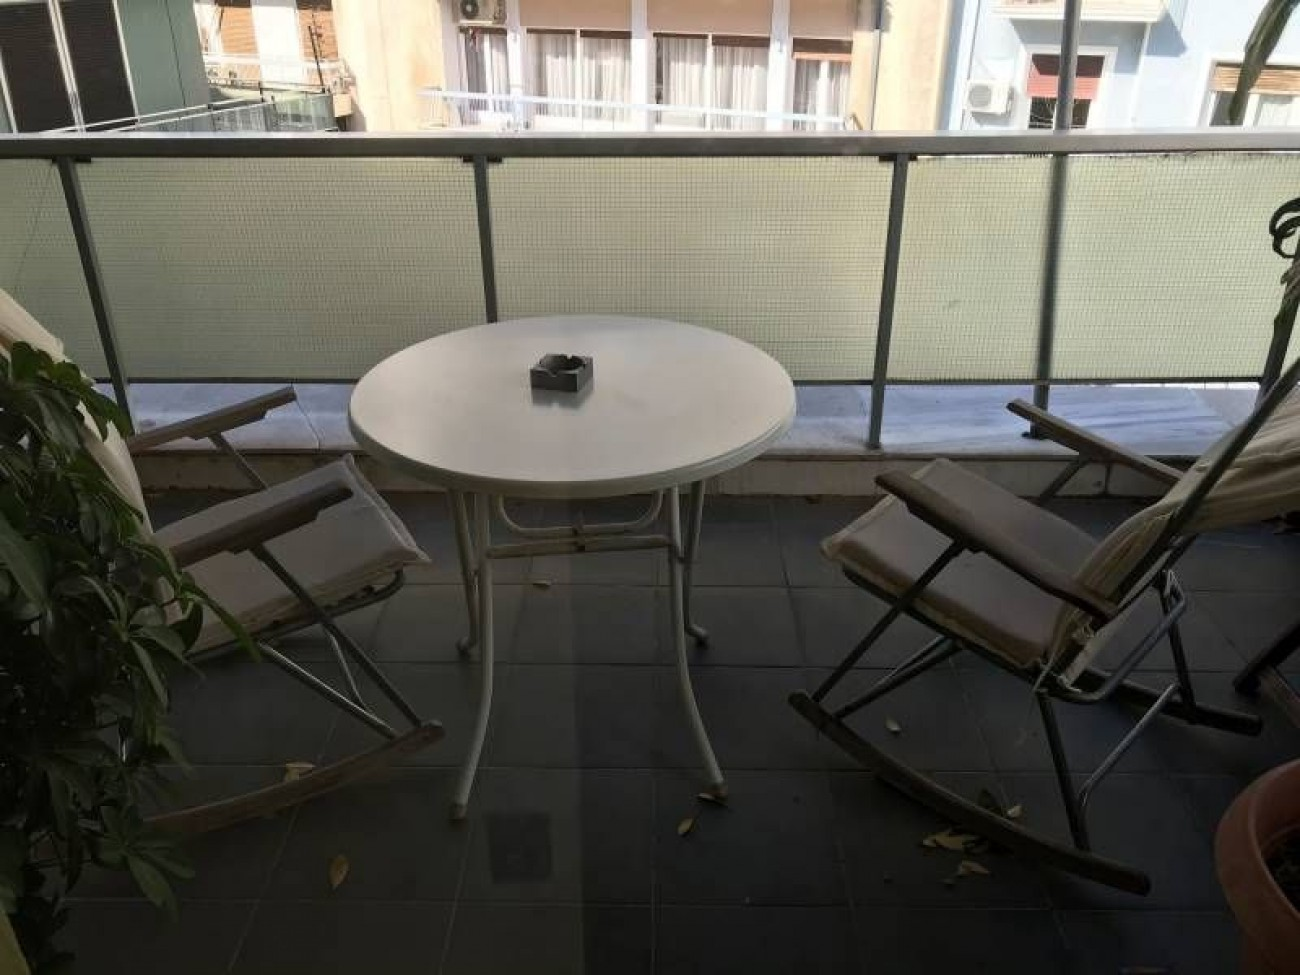 Apartment for Rent in Kolonaki, Athens City Center, Greece